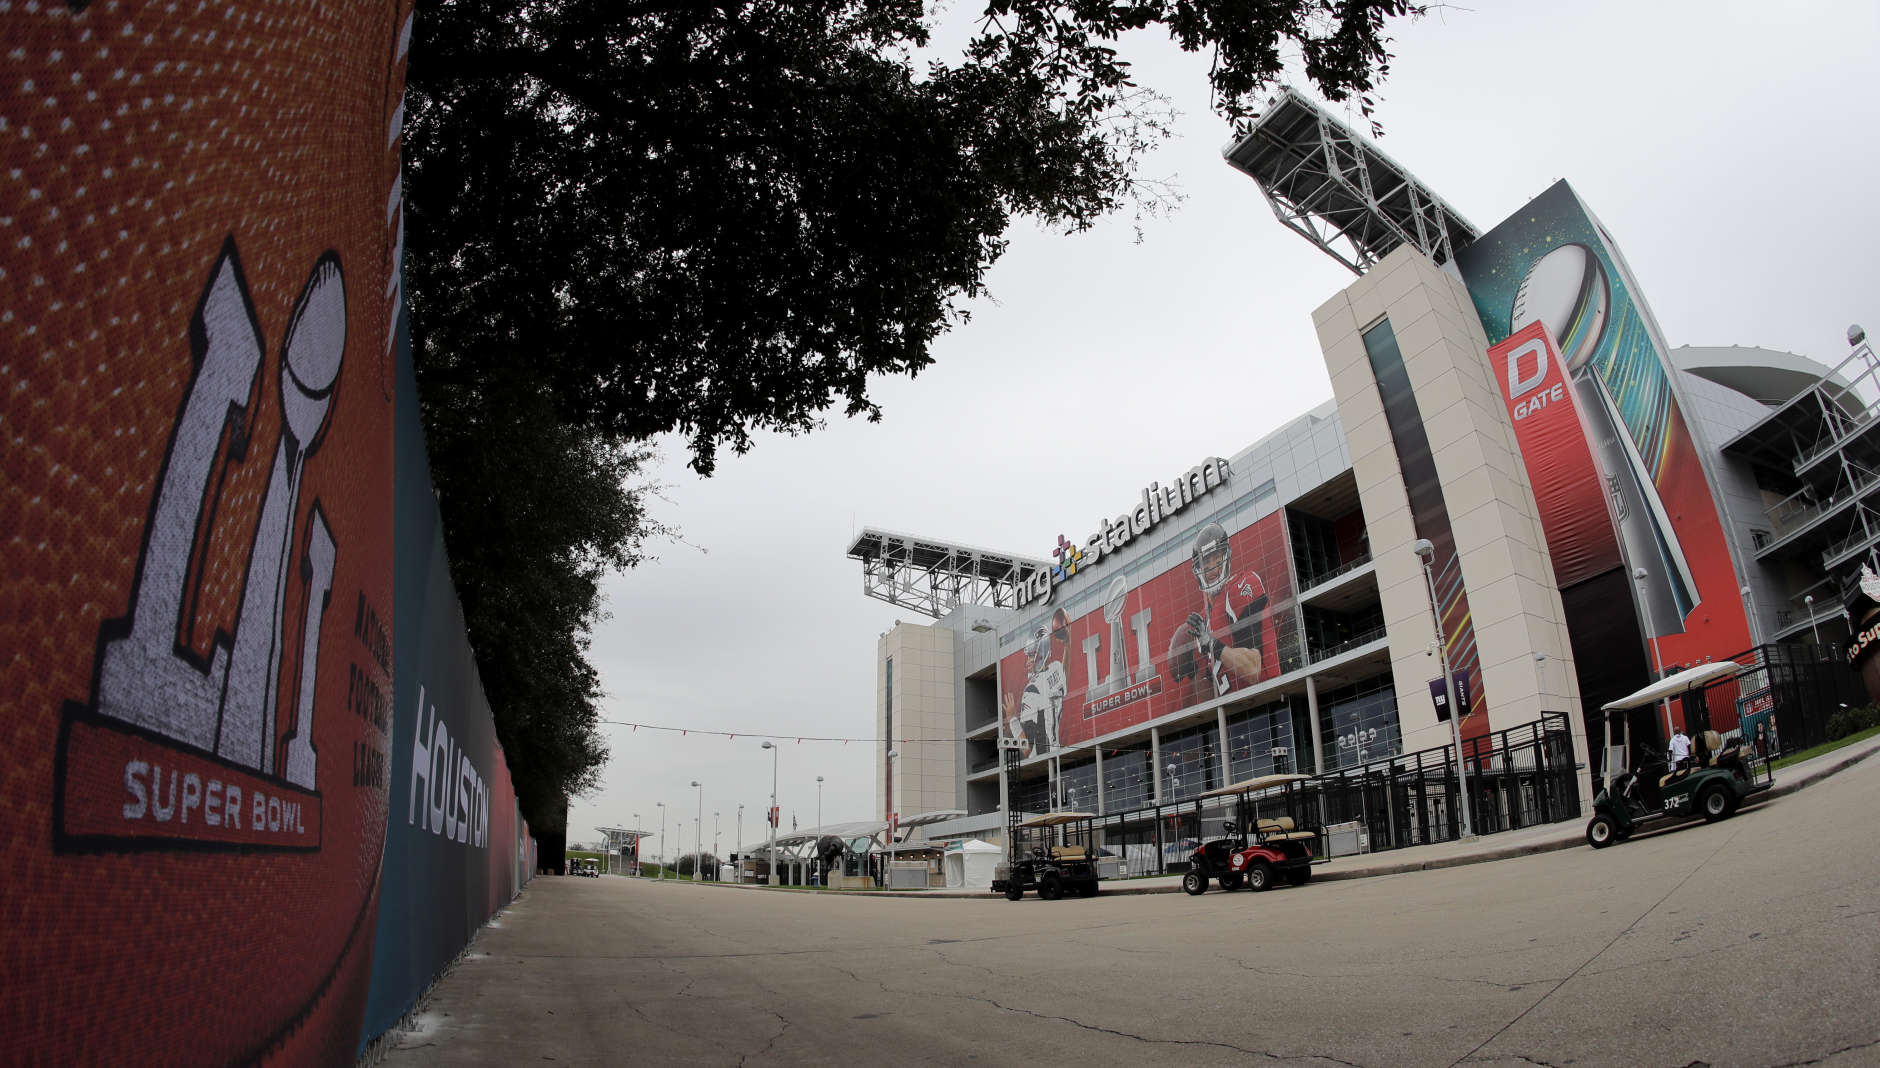 NRG Stadium, site of the NFL Super Bowl 51 football game, is pictured Saturday, Feb. 4, 2017, in Houston. The New England Patriots will face the Atlanta Falcons in the Super Bowl Sunday. (AP Photo/Charlie Riedel)